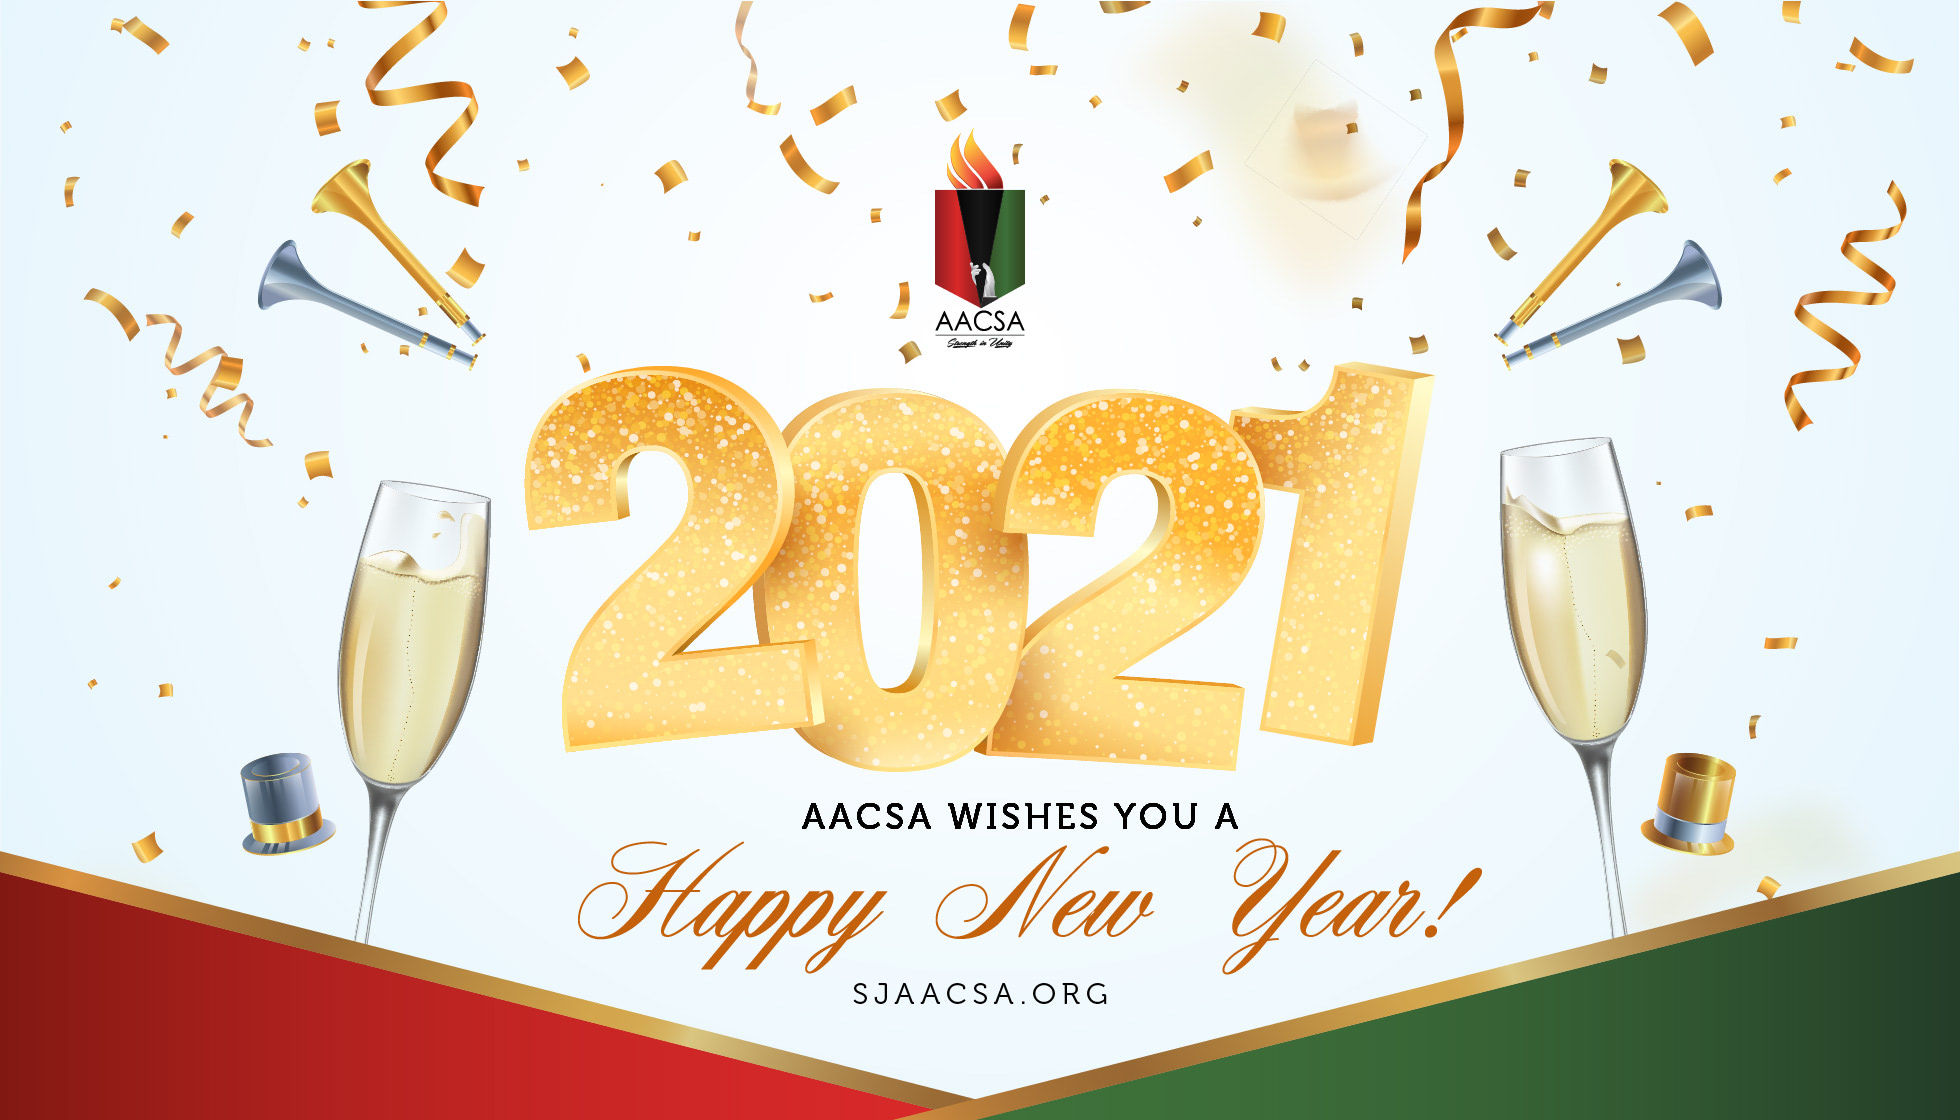 AACSA Wishes you a Happy New Year - 2021!